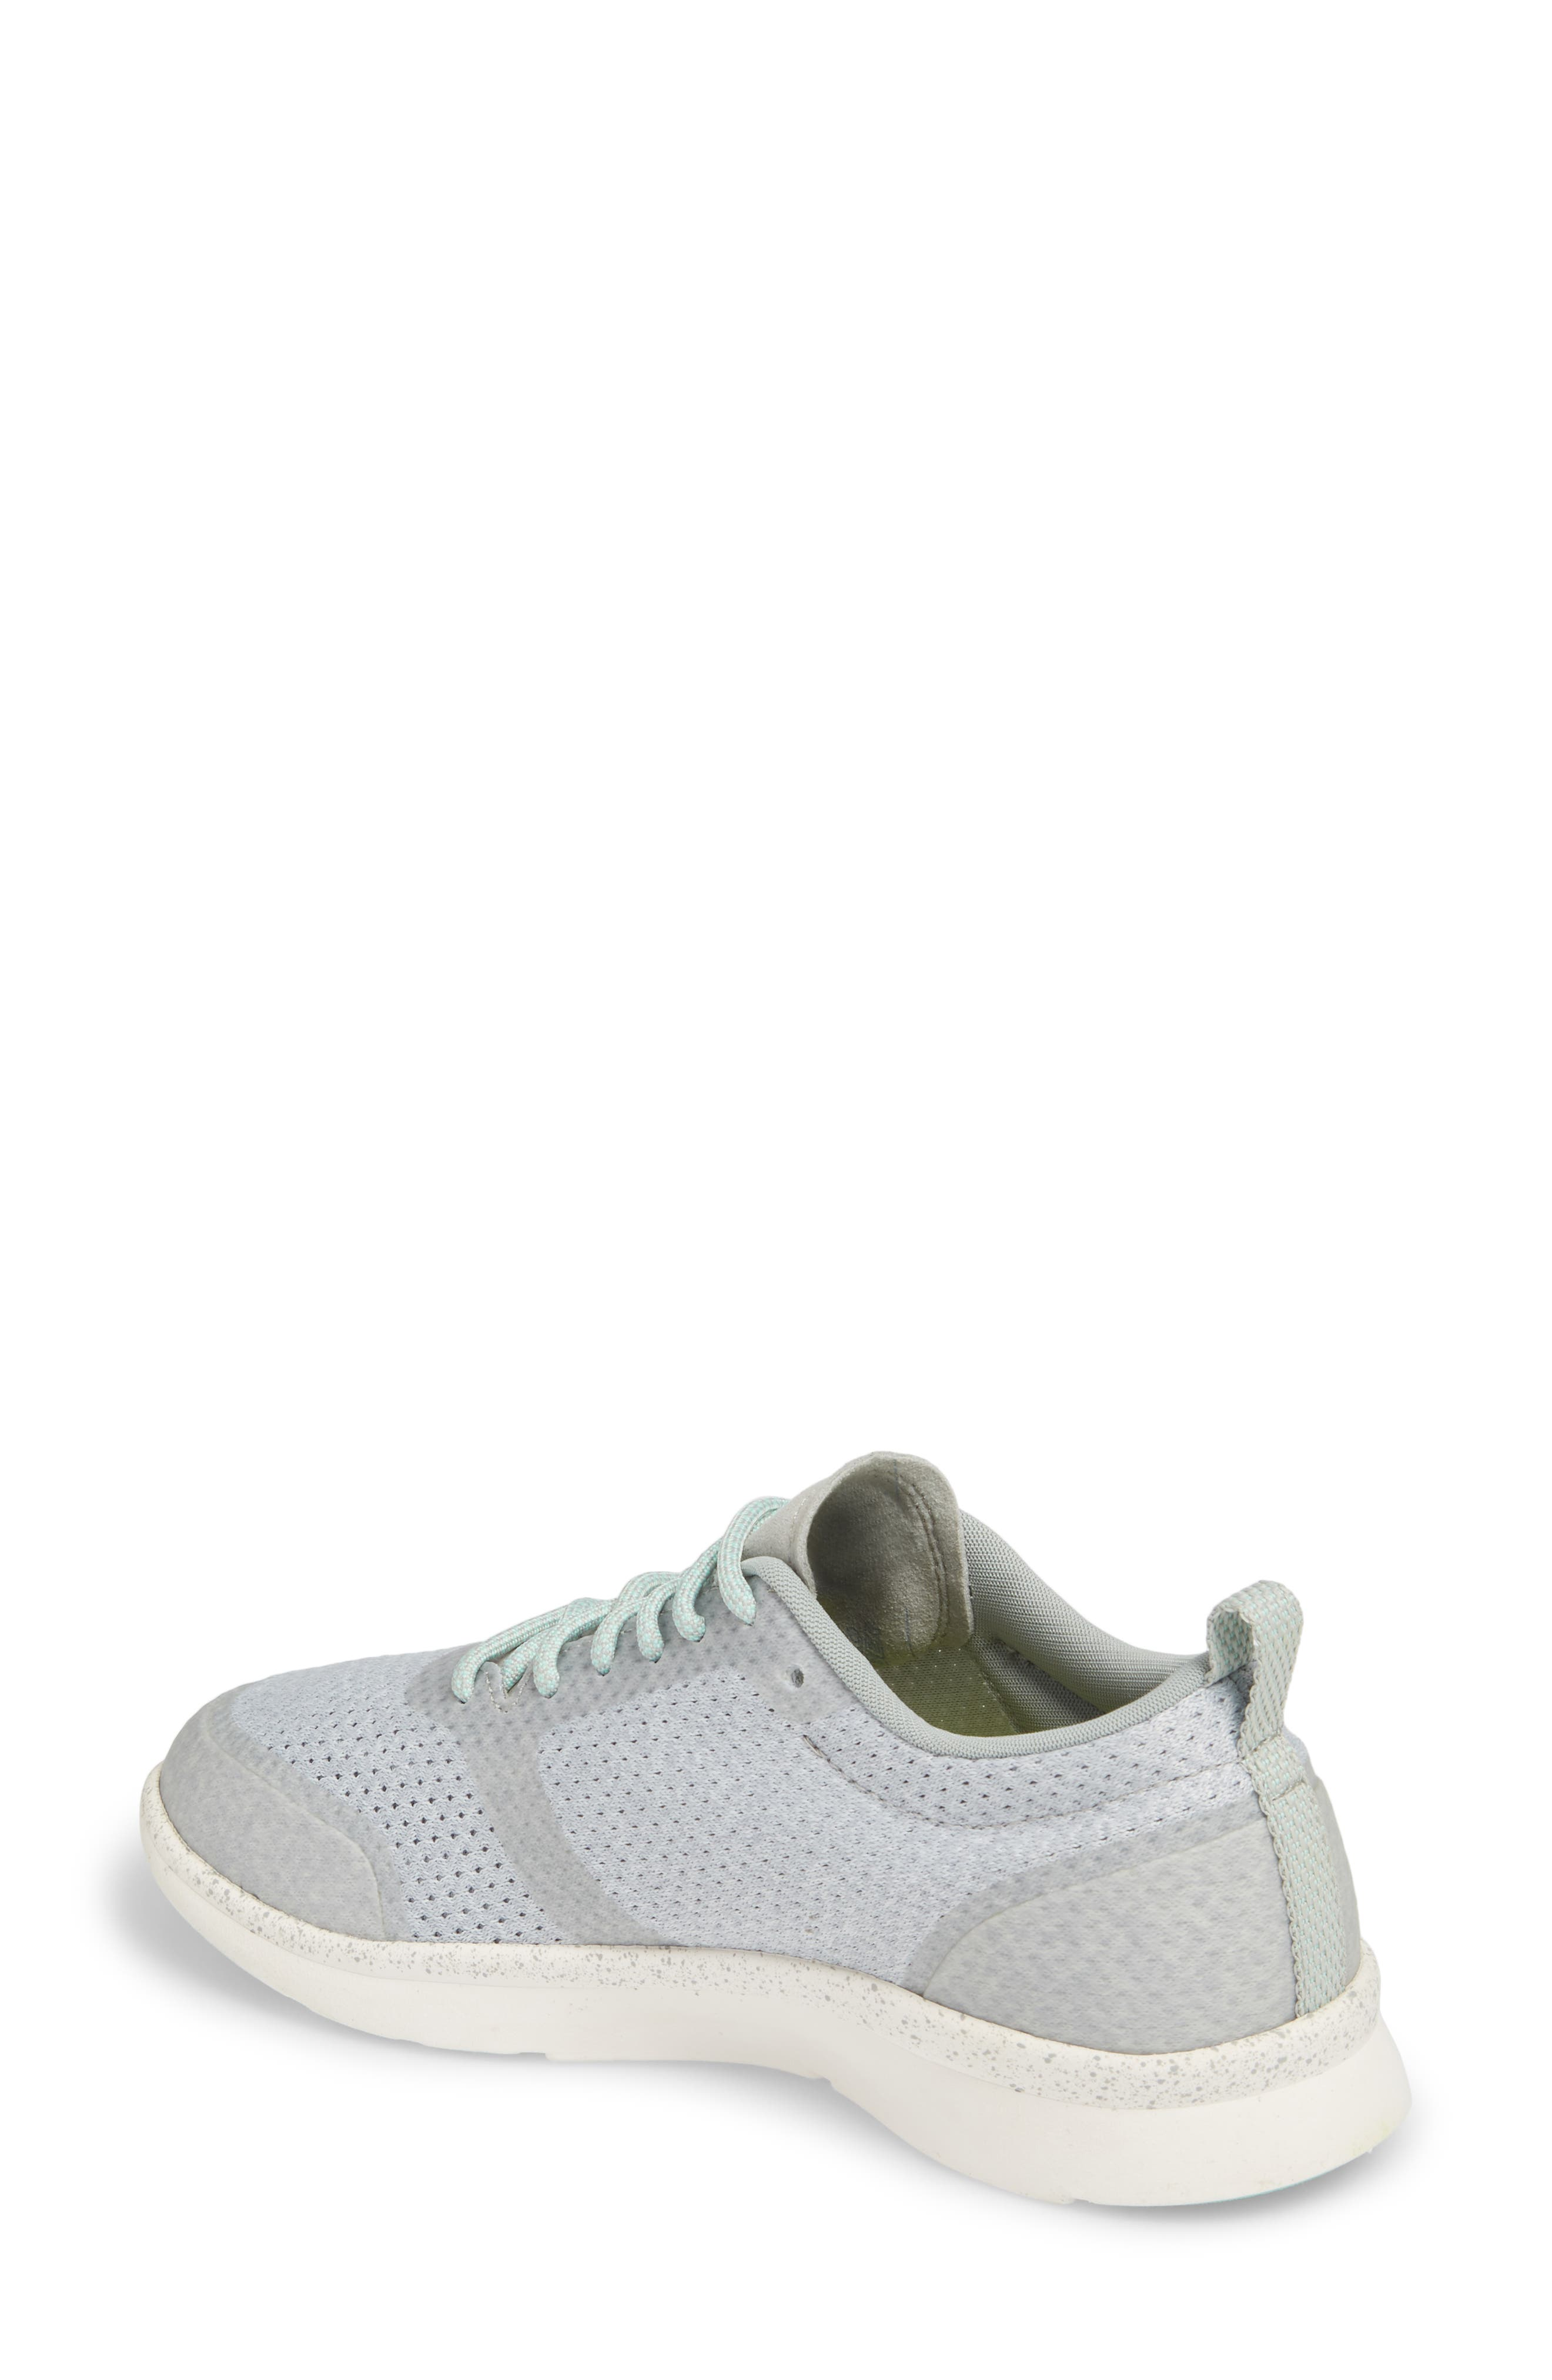 Linden Sneaker,                             Alternate thumbnail 2, color,                             High Rise/ Yucca